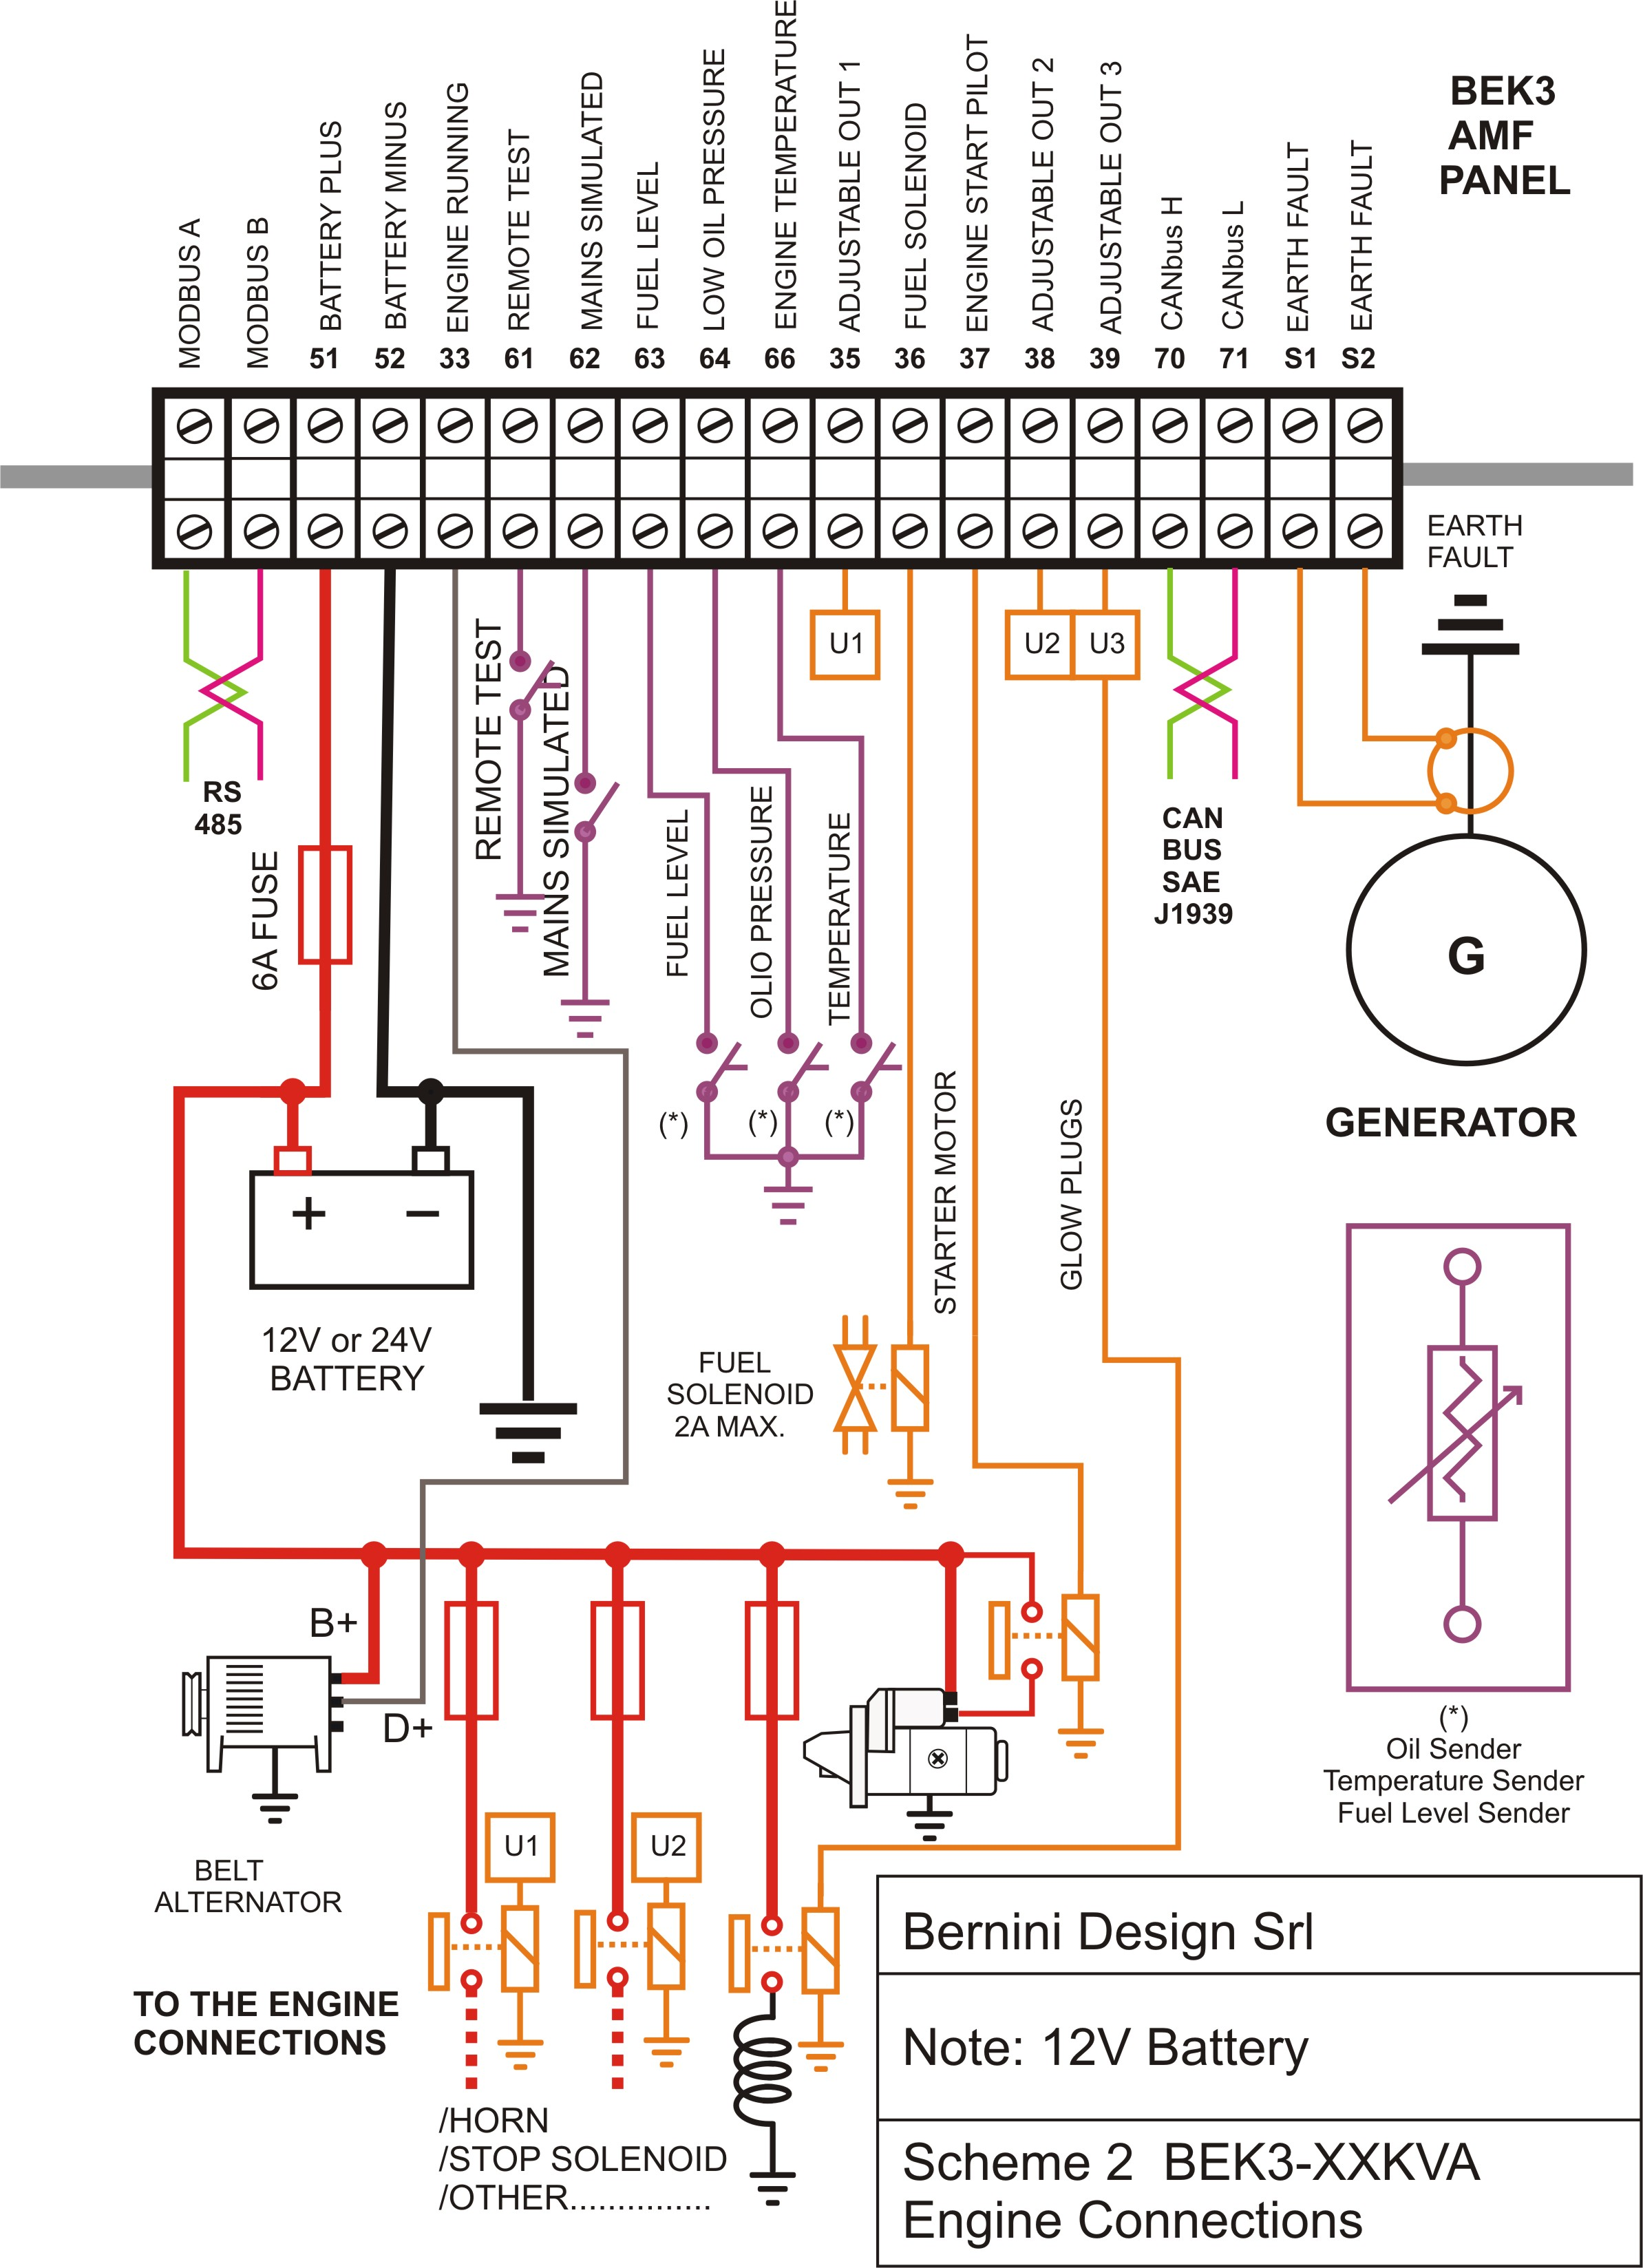 Diesel Generator Control Panel Wiring Diagram Engine Connections wiring diagram tool wiring color coding \u2022 free wiring diagrams Control Panel Electrical Wiring Basics at gsmx.co